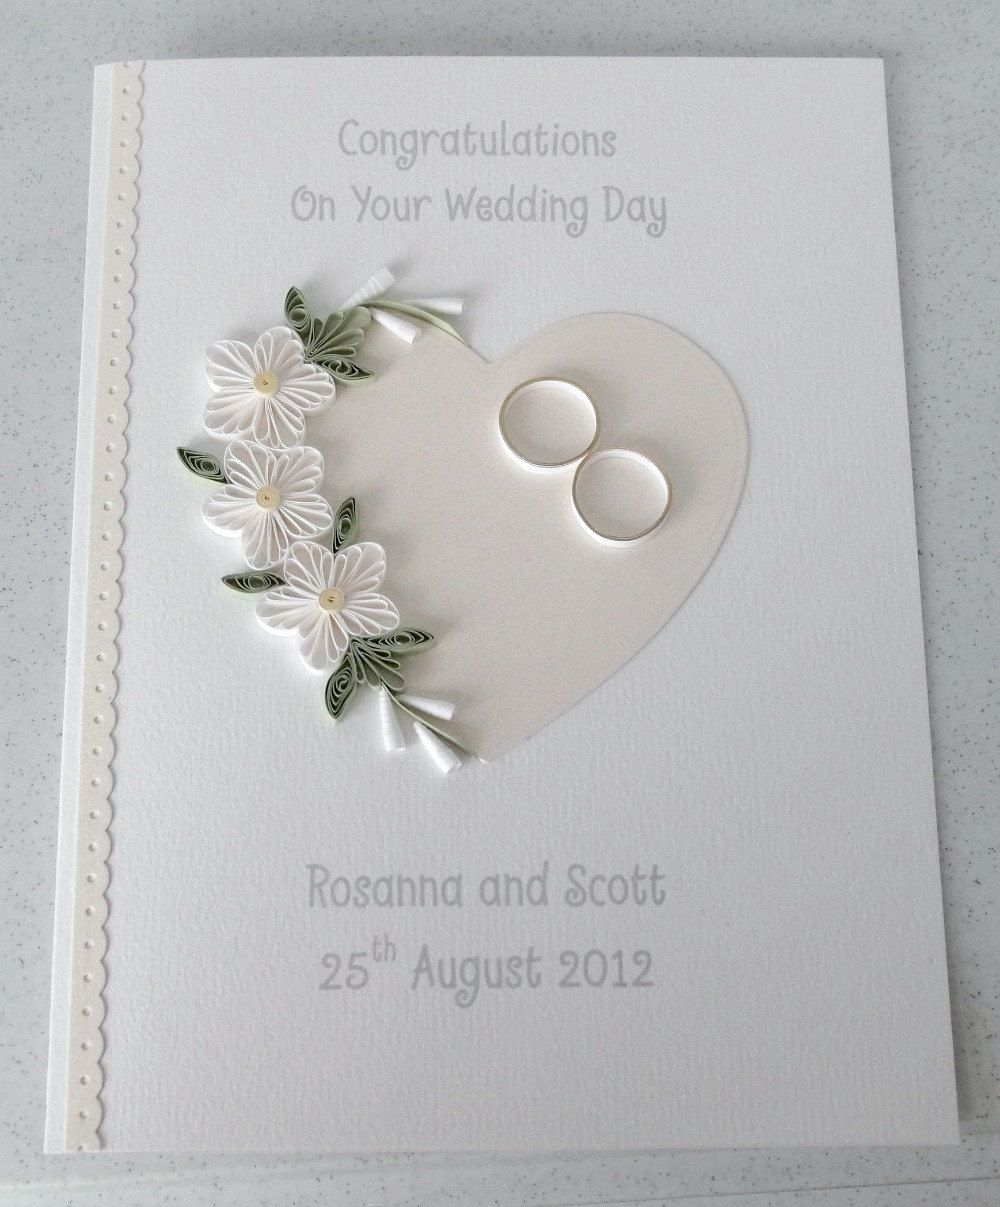 Congratulations on Your Wedding Day Card Elegant Wedding Day Card Roses /& Rings